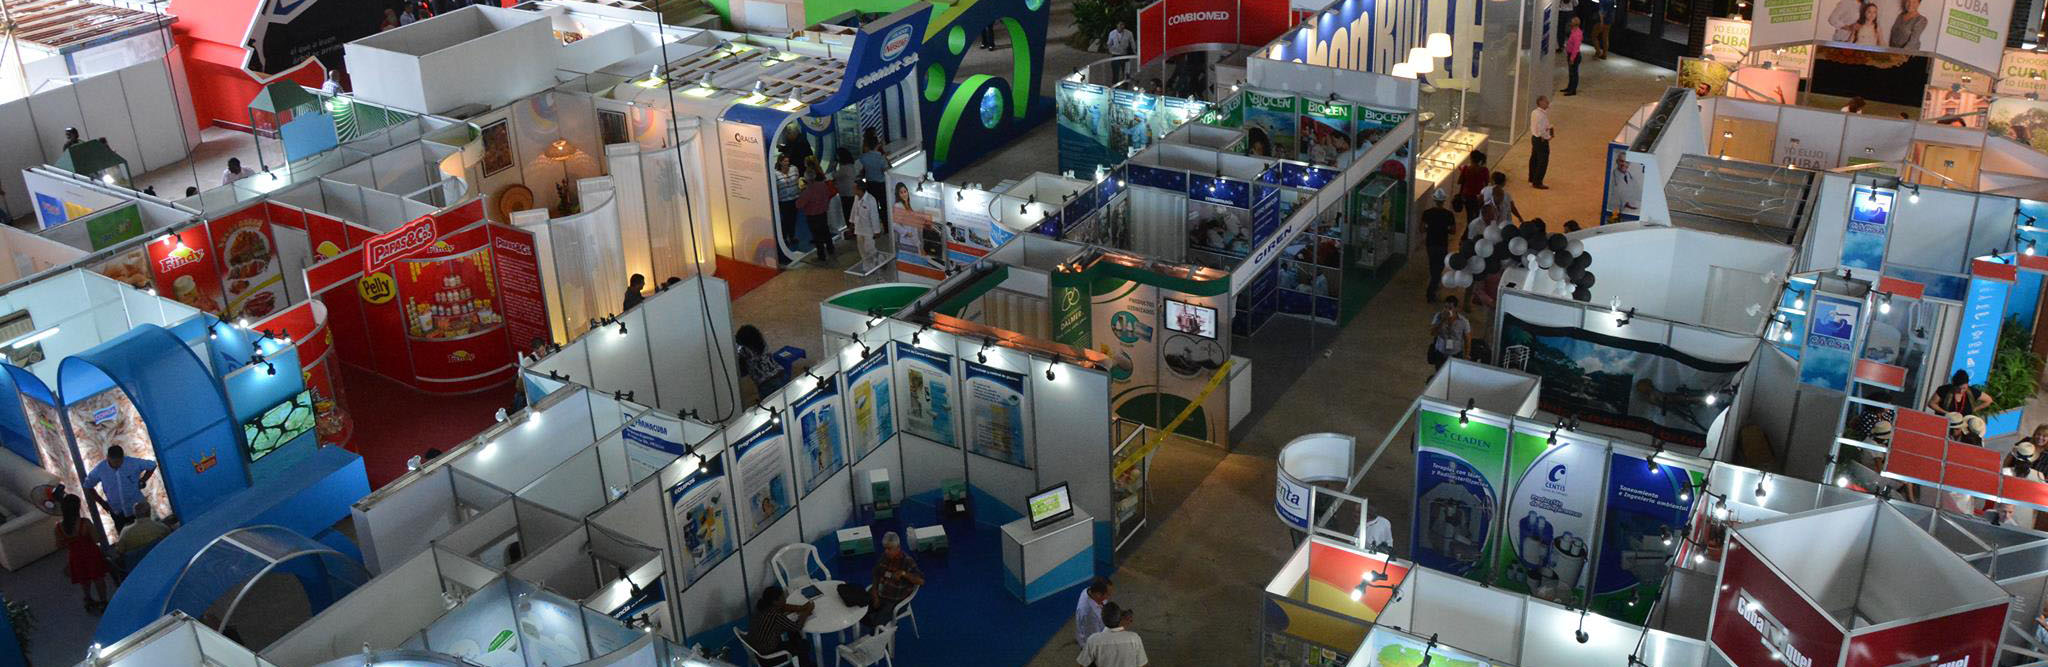 PABEXPO exhibition halls, Cuba Travel